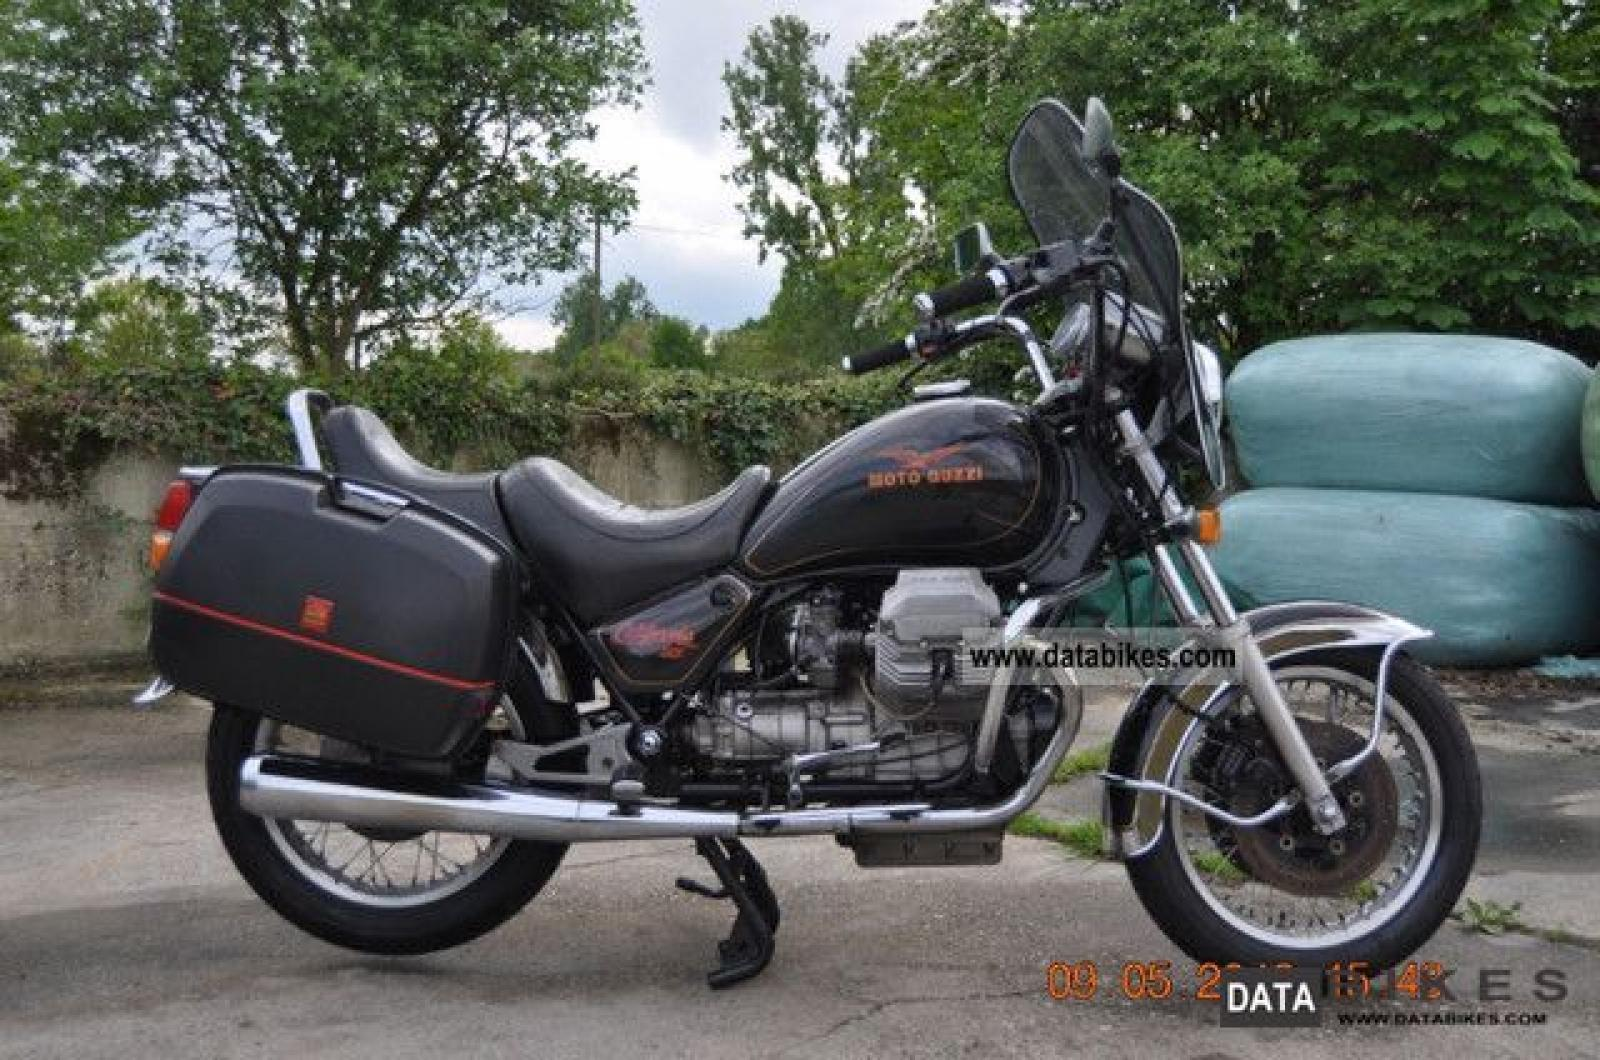 Moto Guzzi California III 1993 images #108668